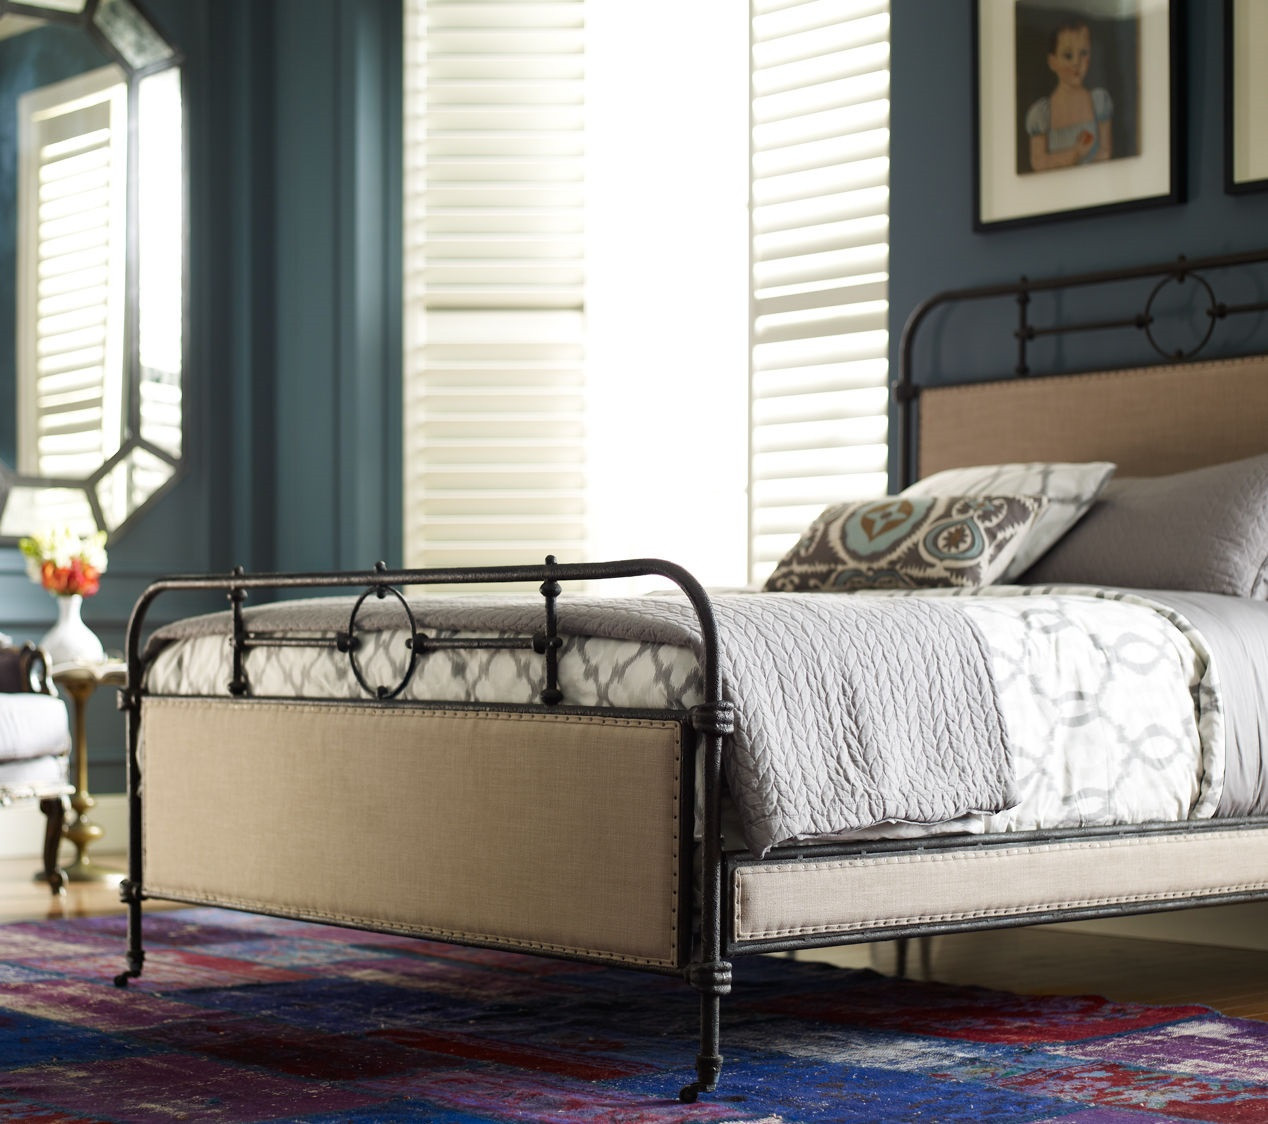 Cast Iron Bed Frame Ideas